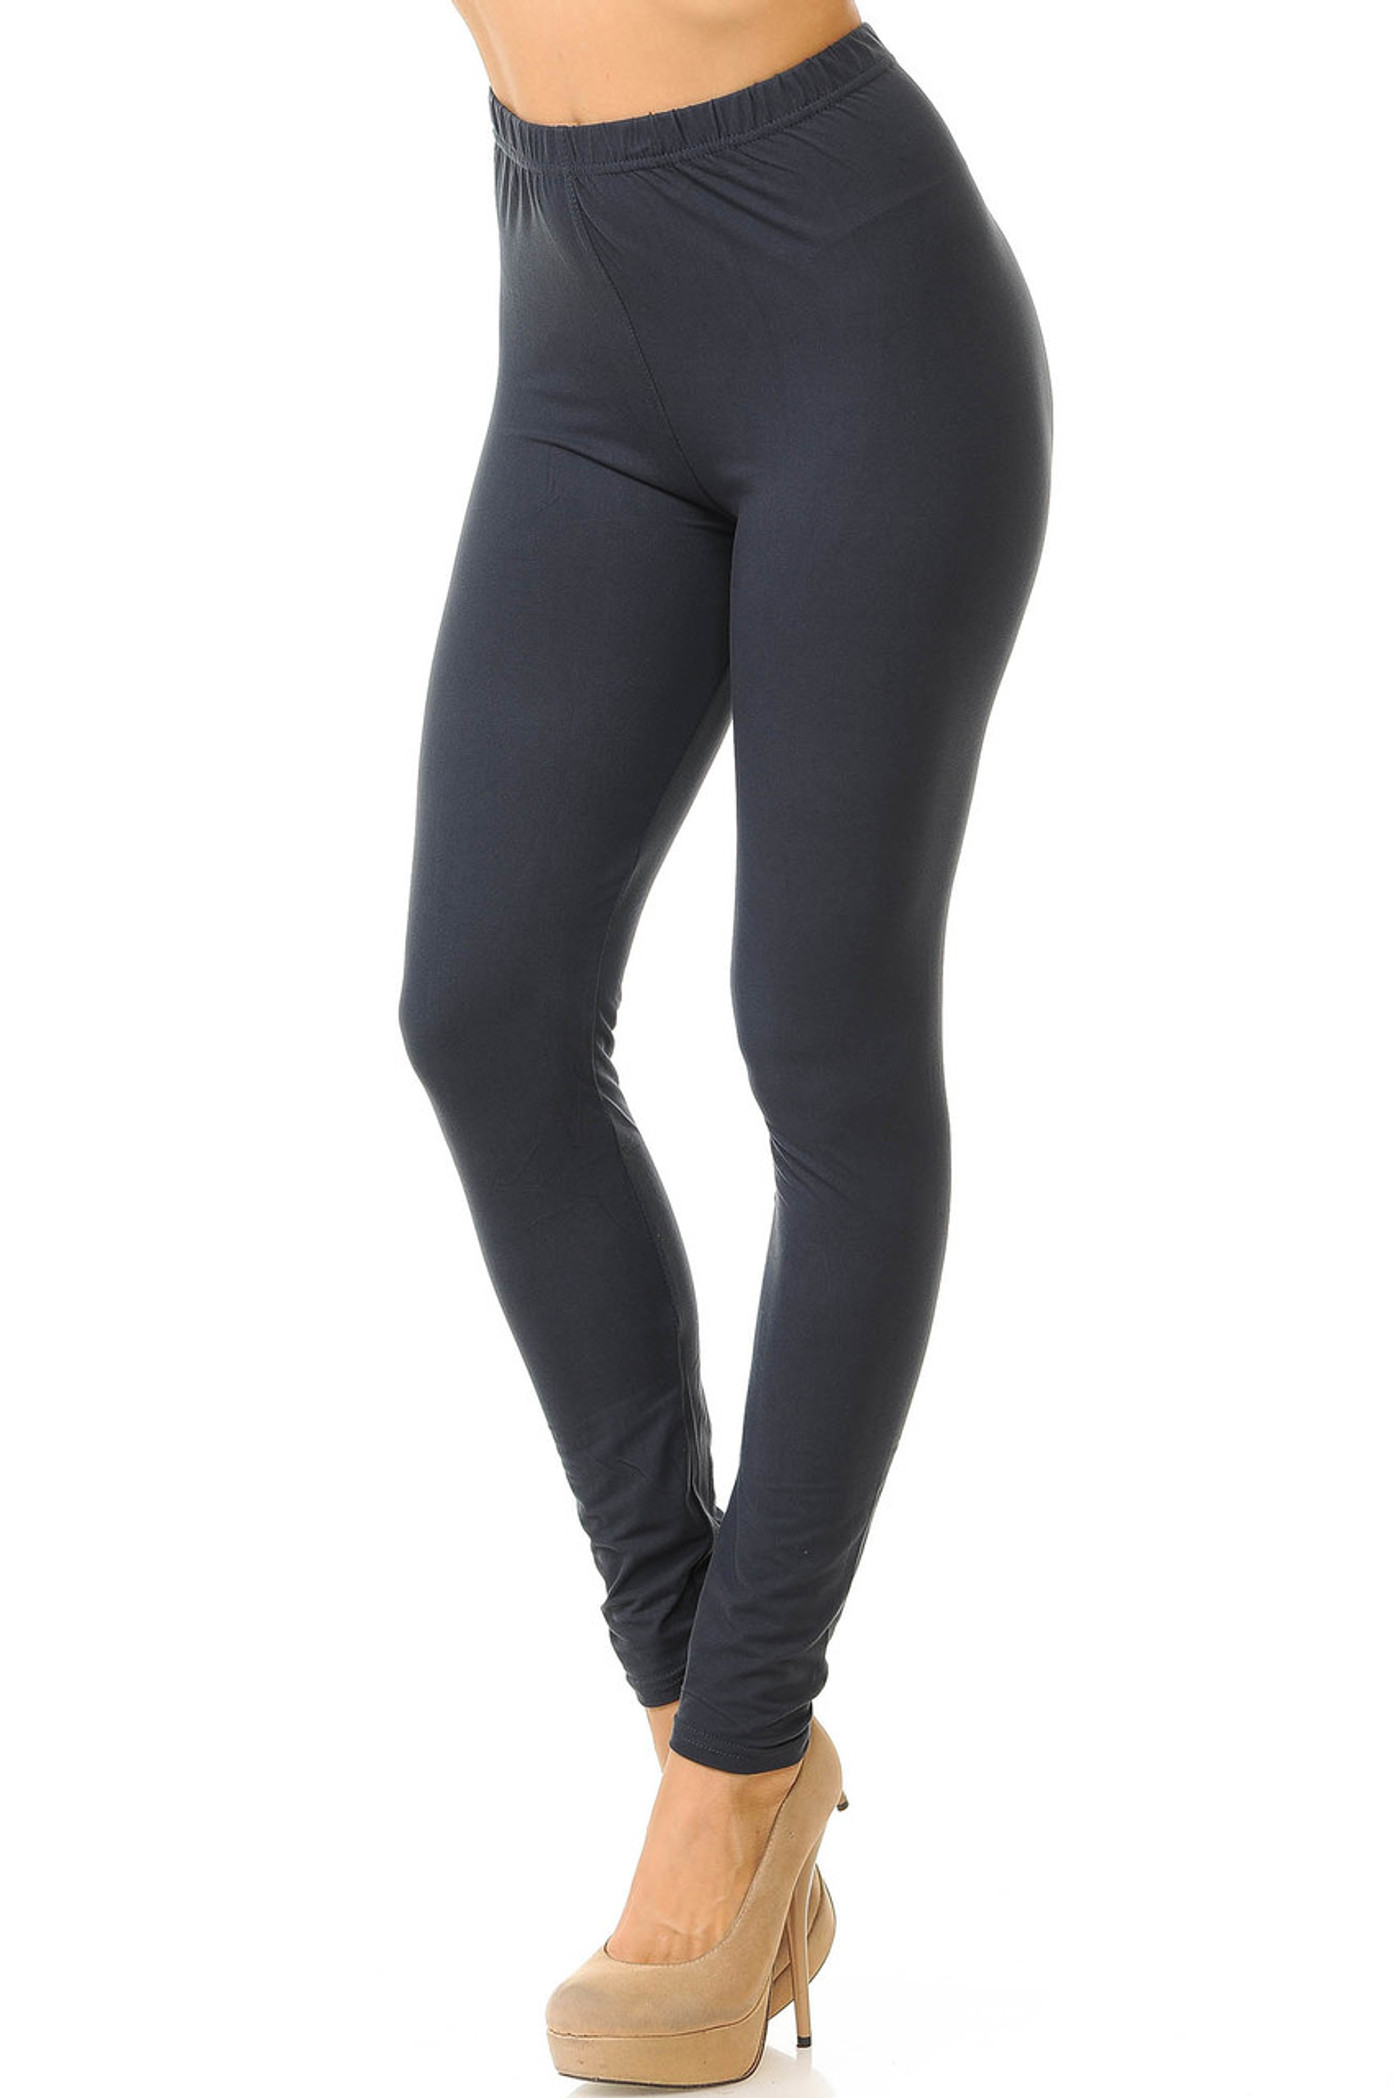 Charcoal  Basic Solid Buttery Soft Leggings - New Mix